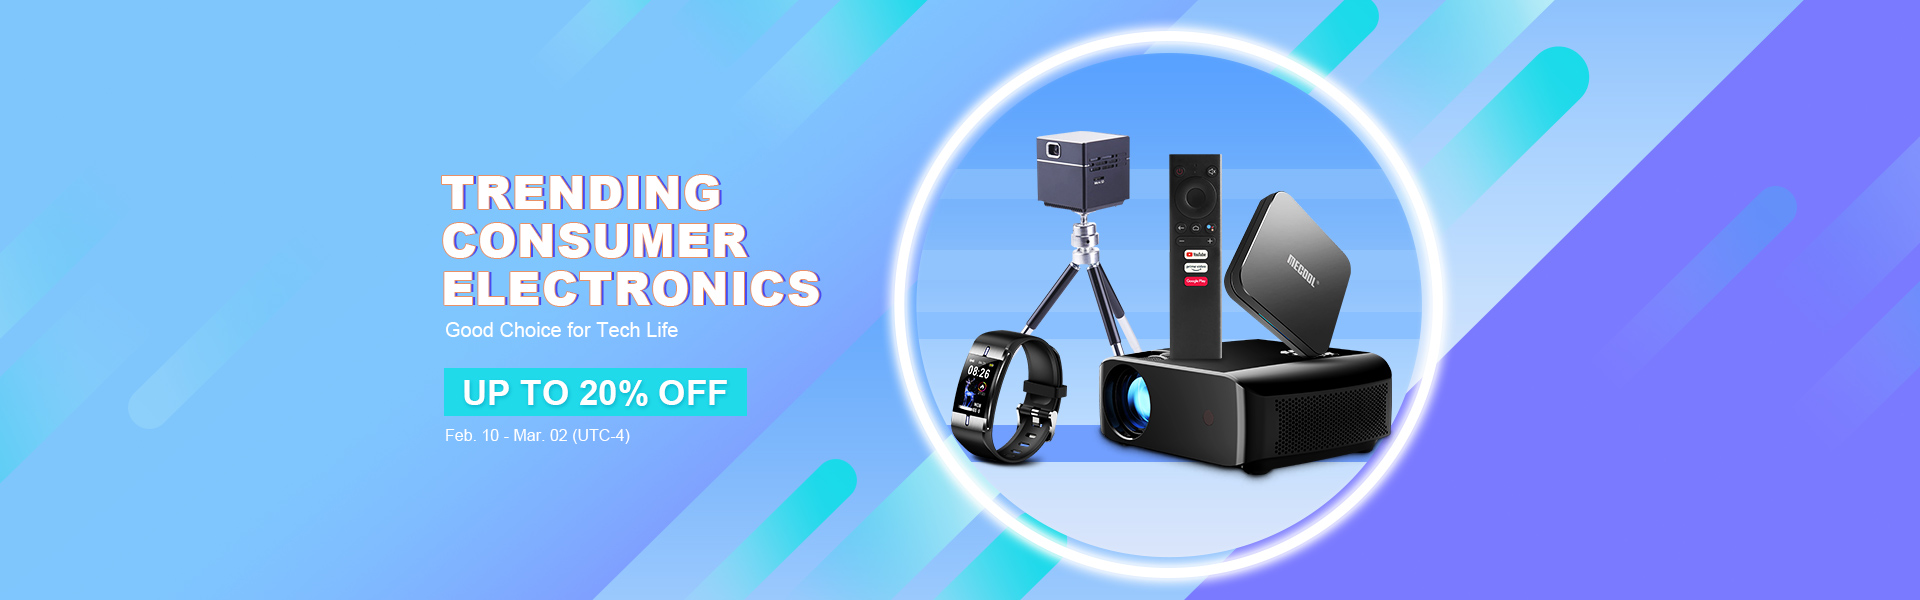 Trending Consumer Electronics Up to 20% off-TVC-Mall.com